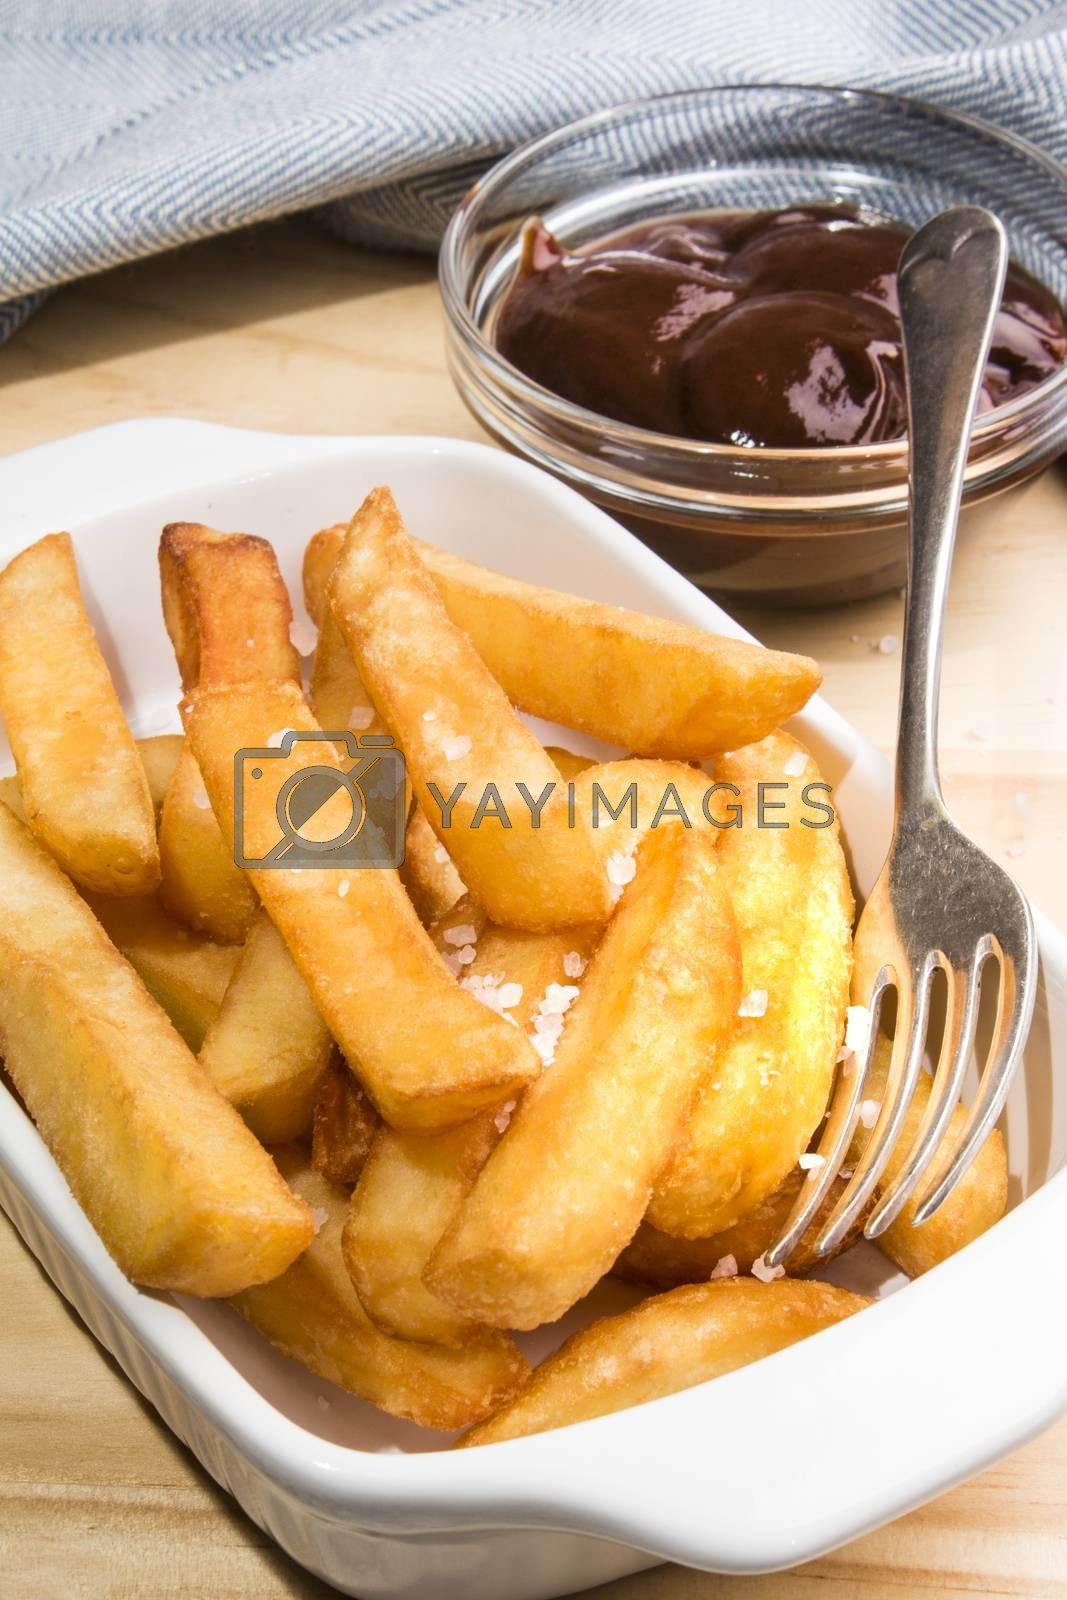 french fries with british brown sauce in a bowl